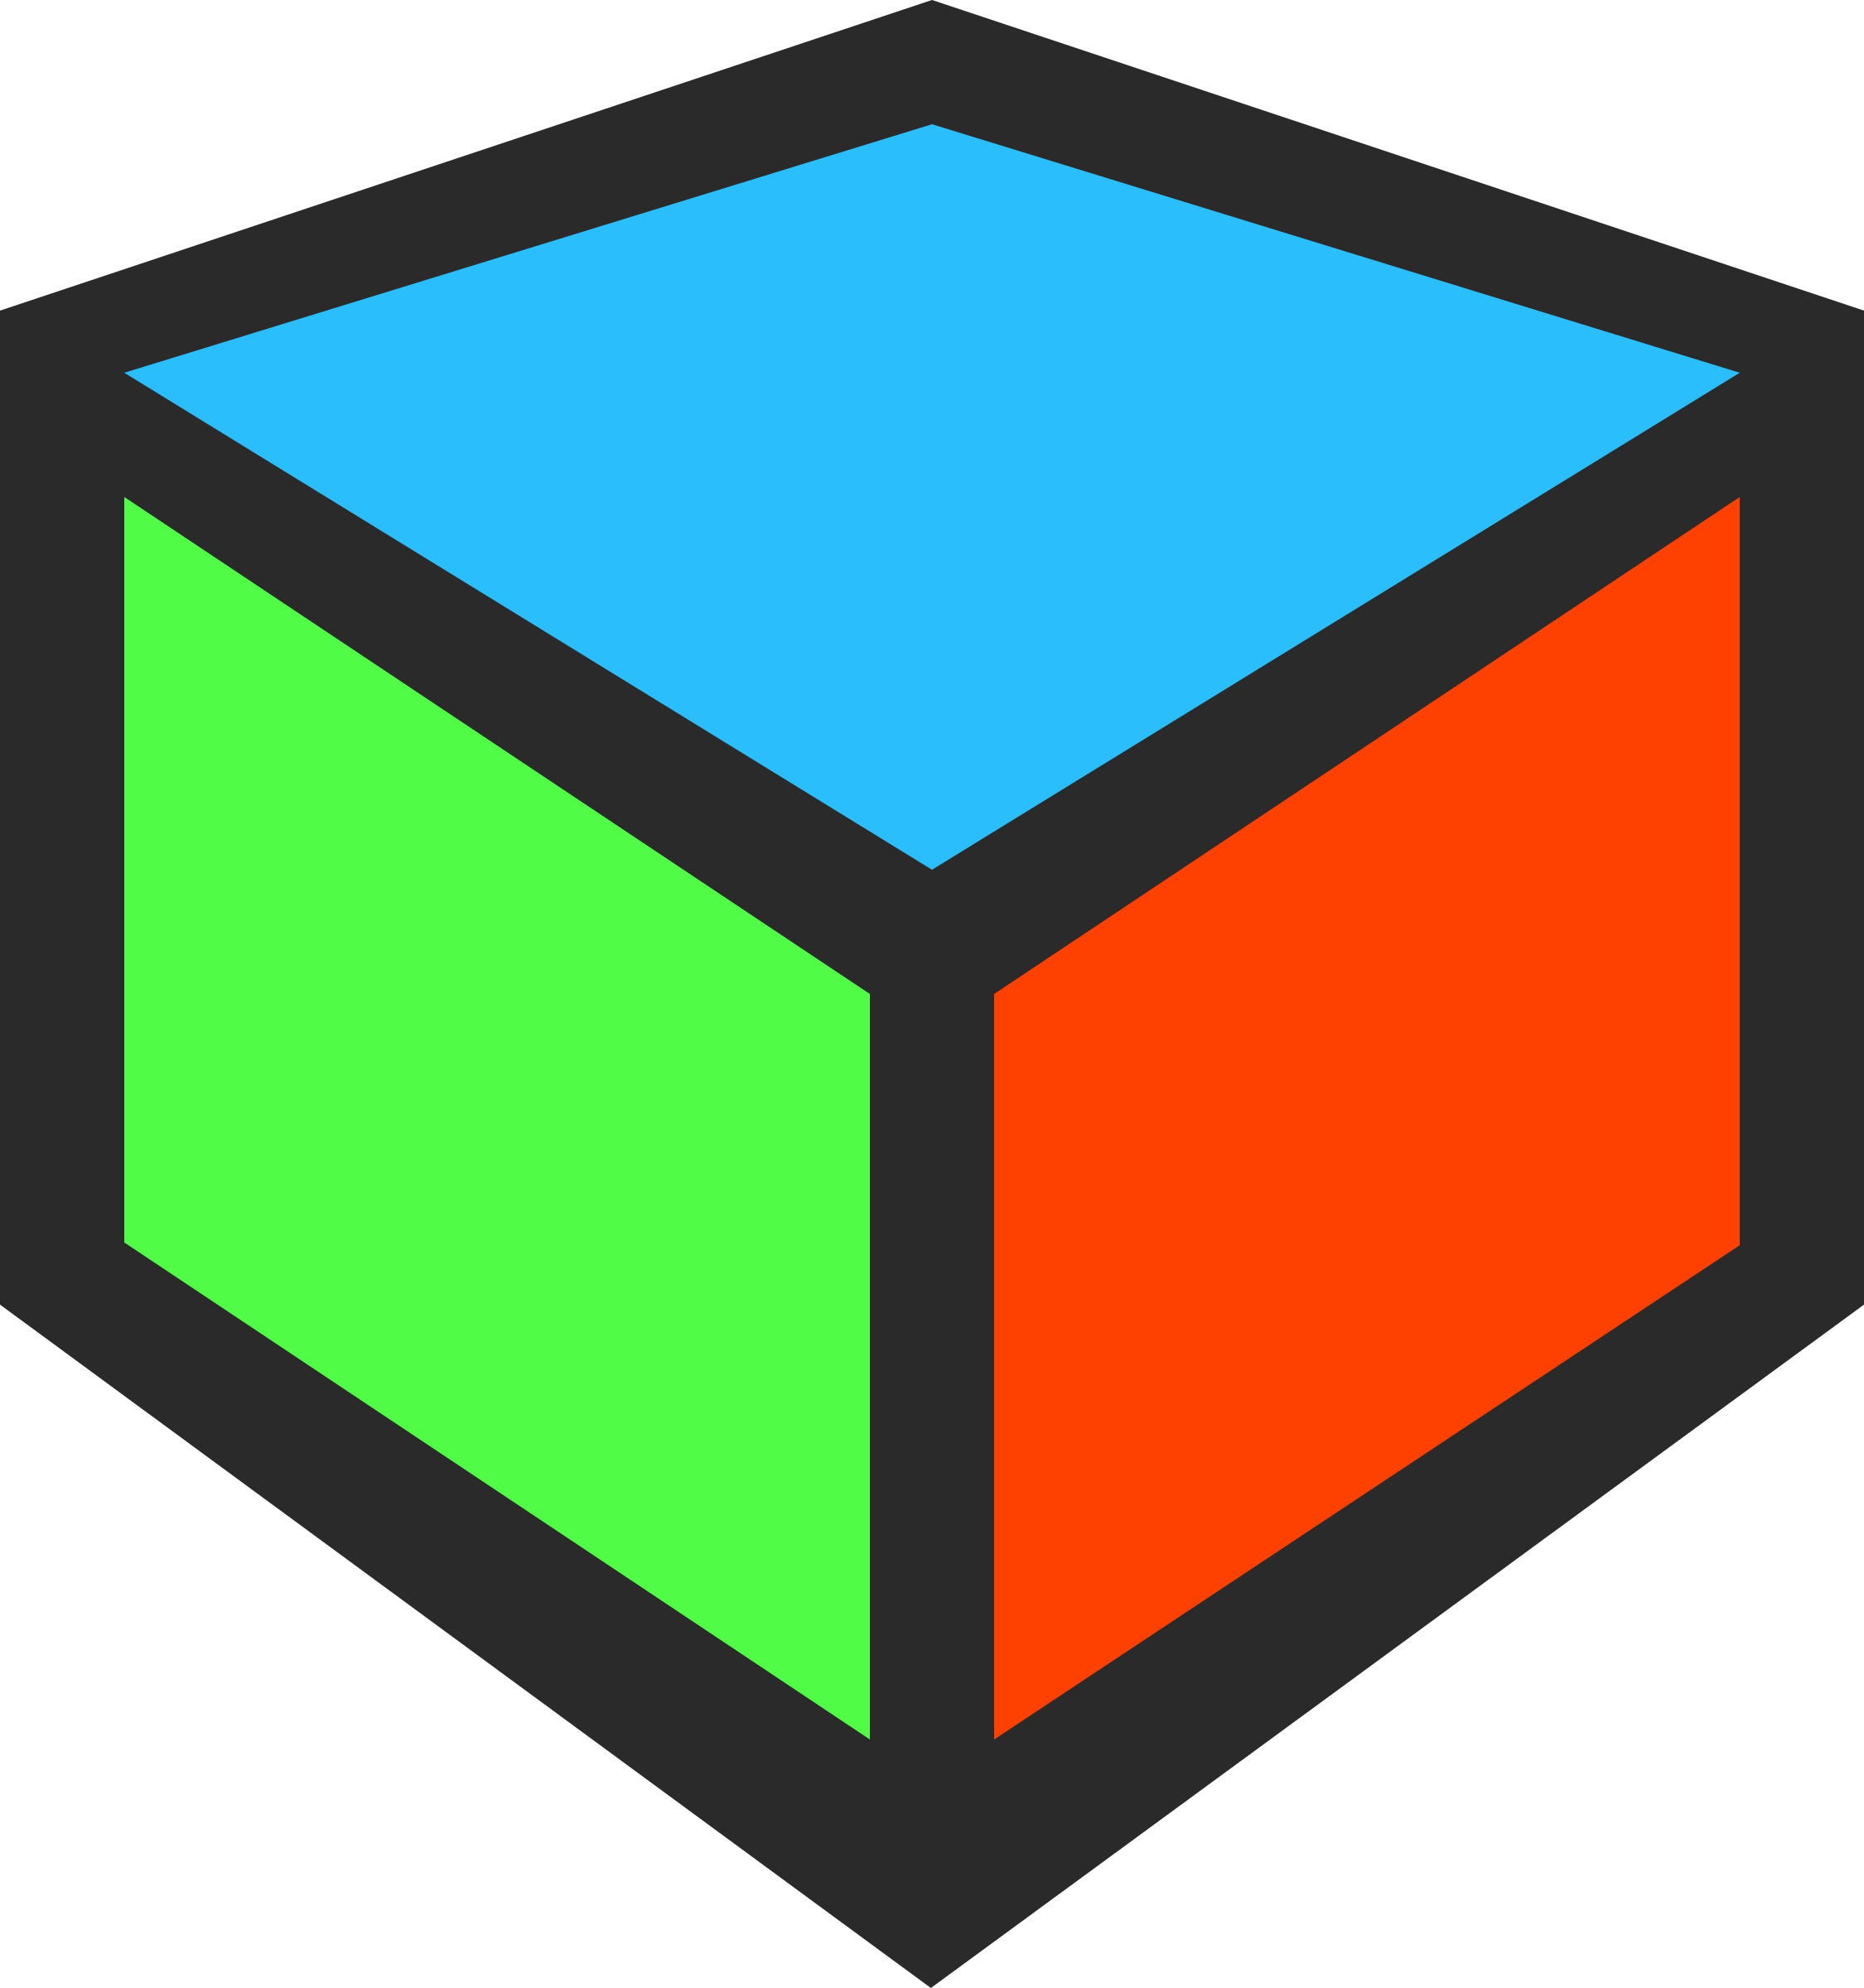 3D Cube Icon by qubodup